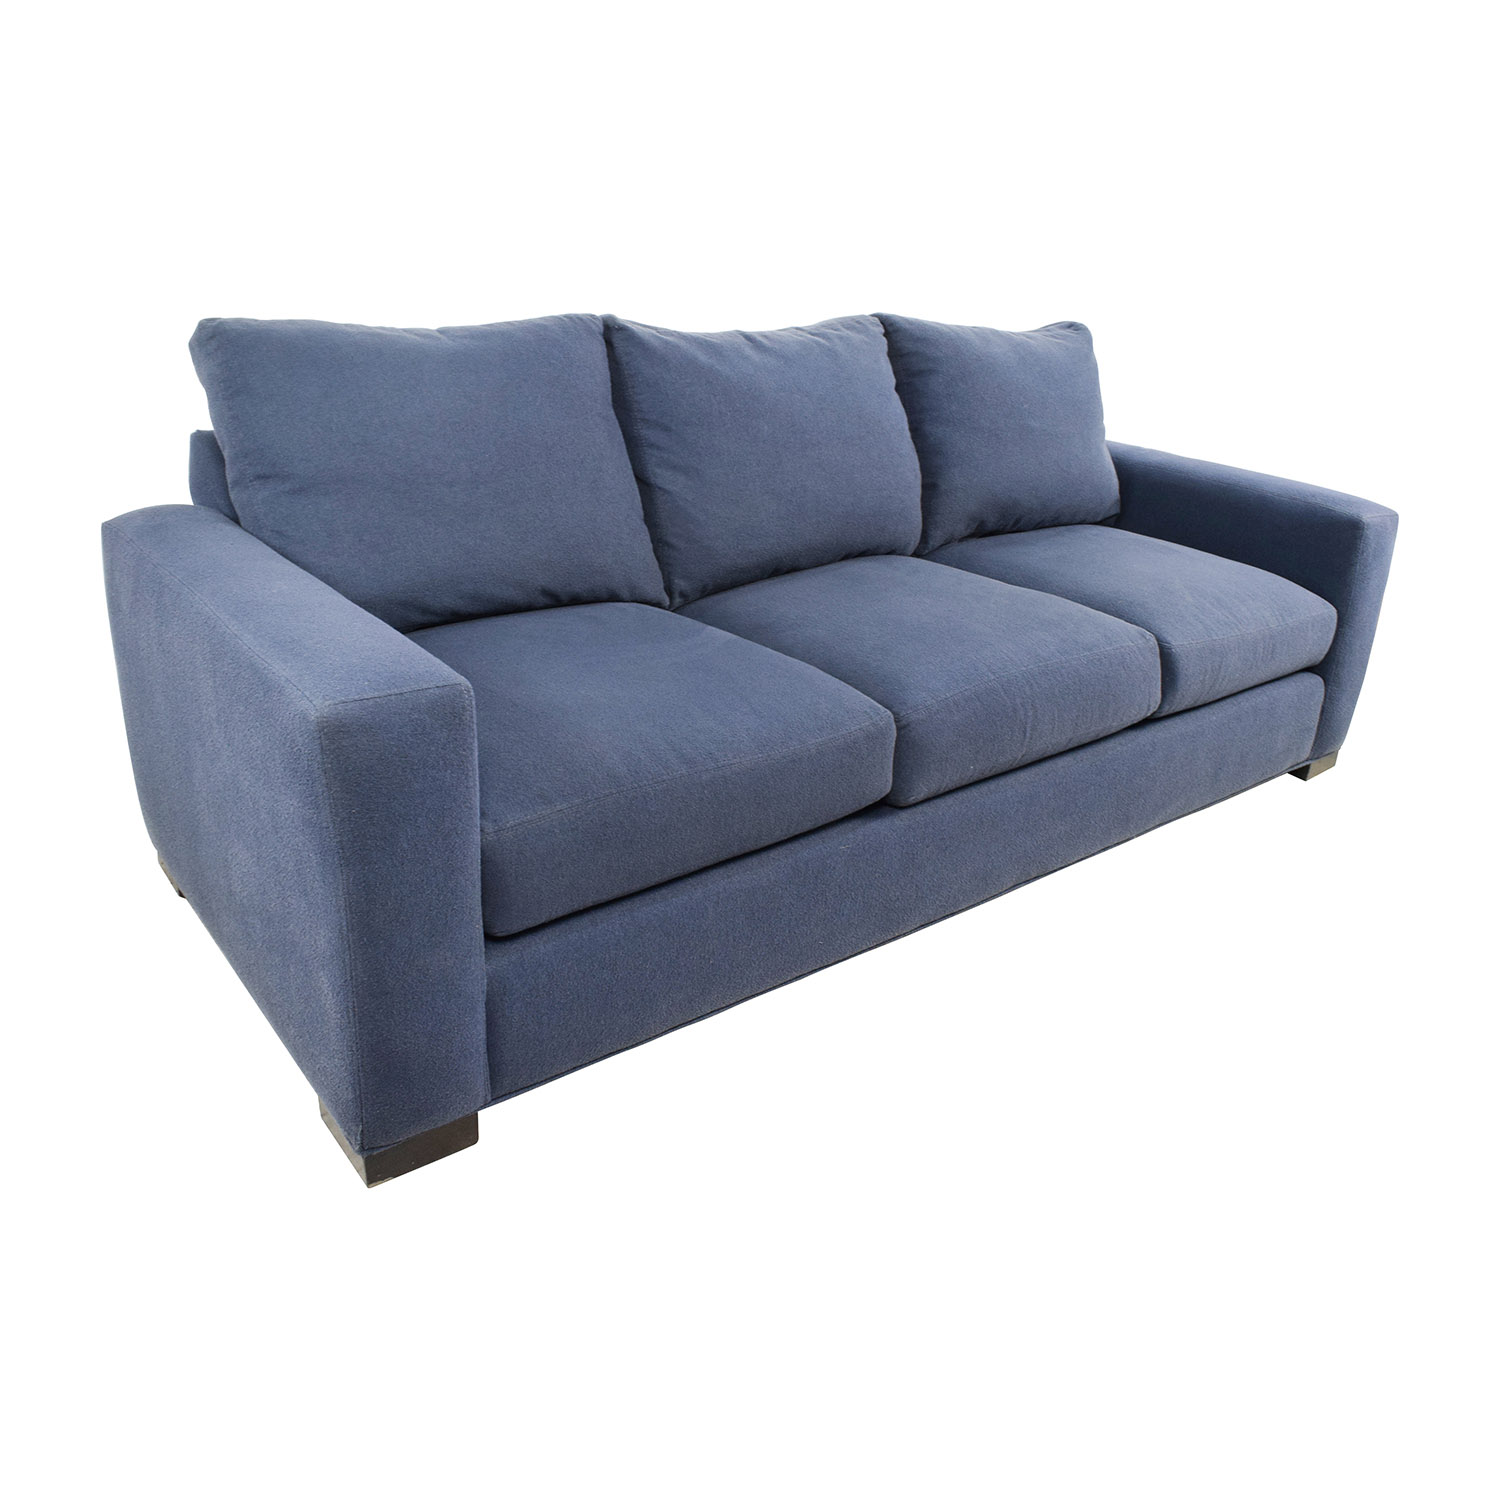 54% OFF Room and Board Room & Board Metro Blue Sofa Sofas